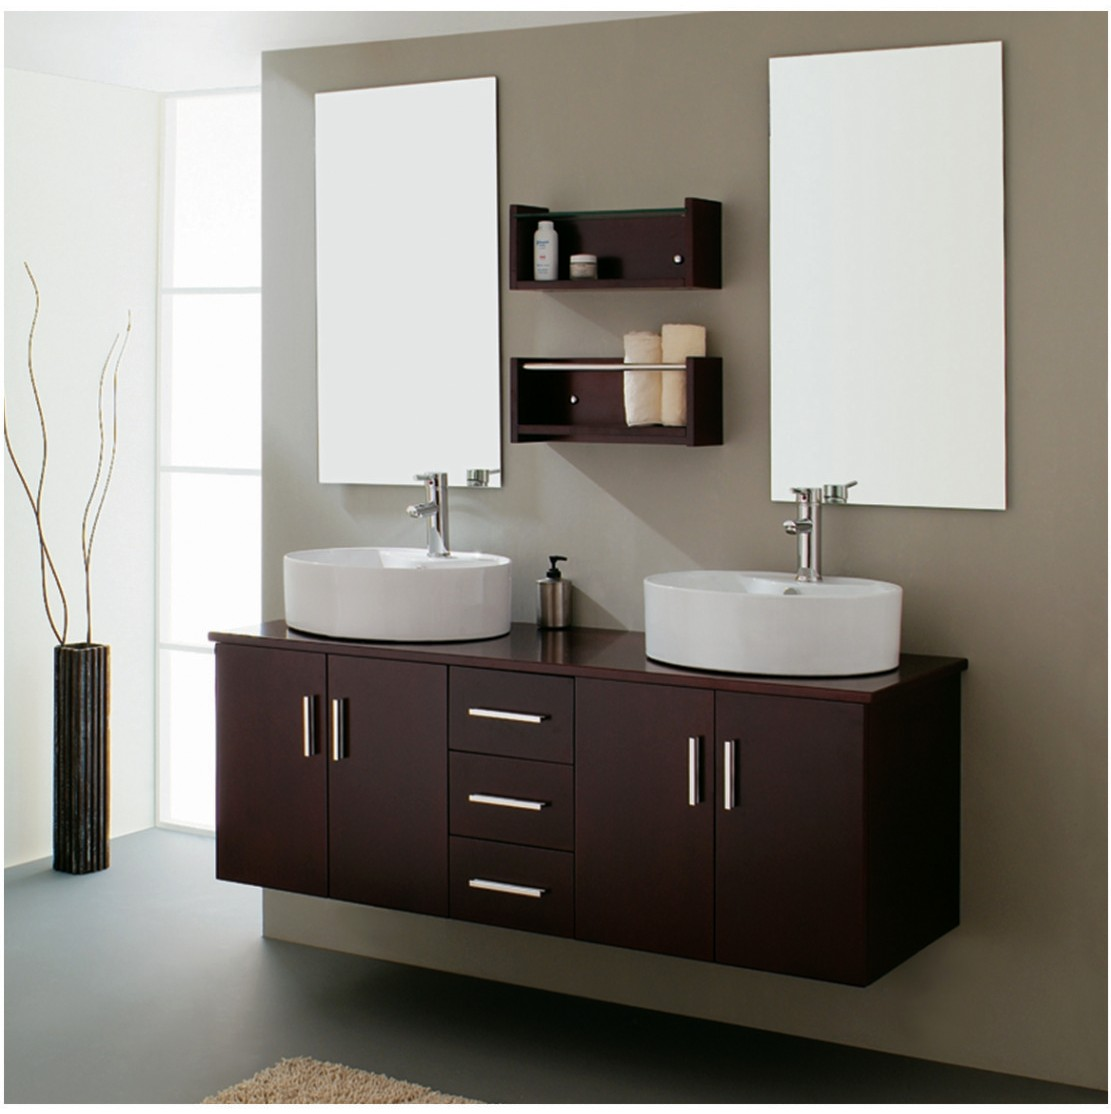 Modern bathroom double sink home decorating ideas for Contemporary bathroom design ideas